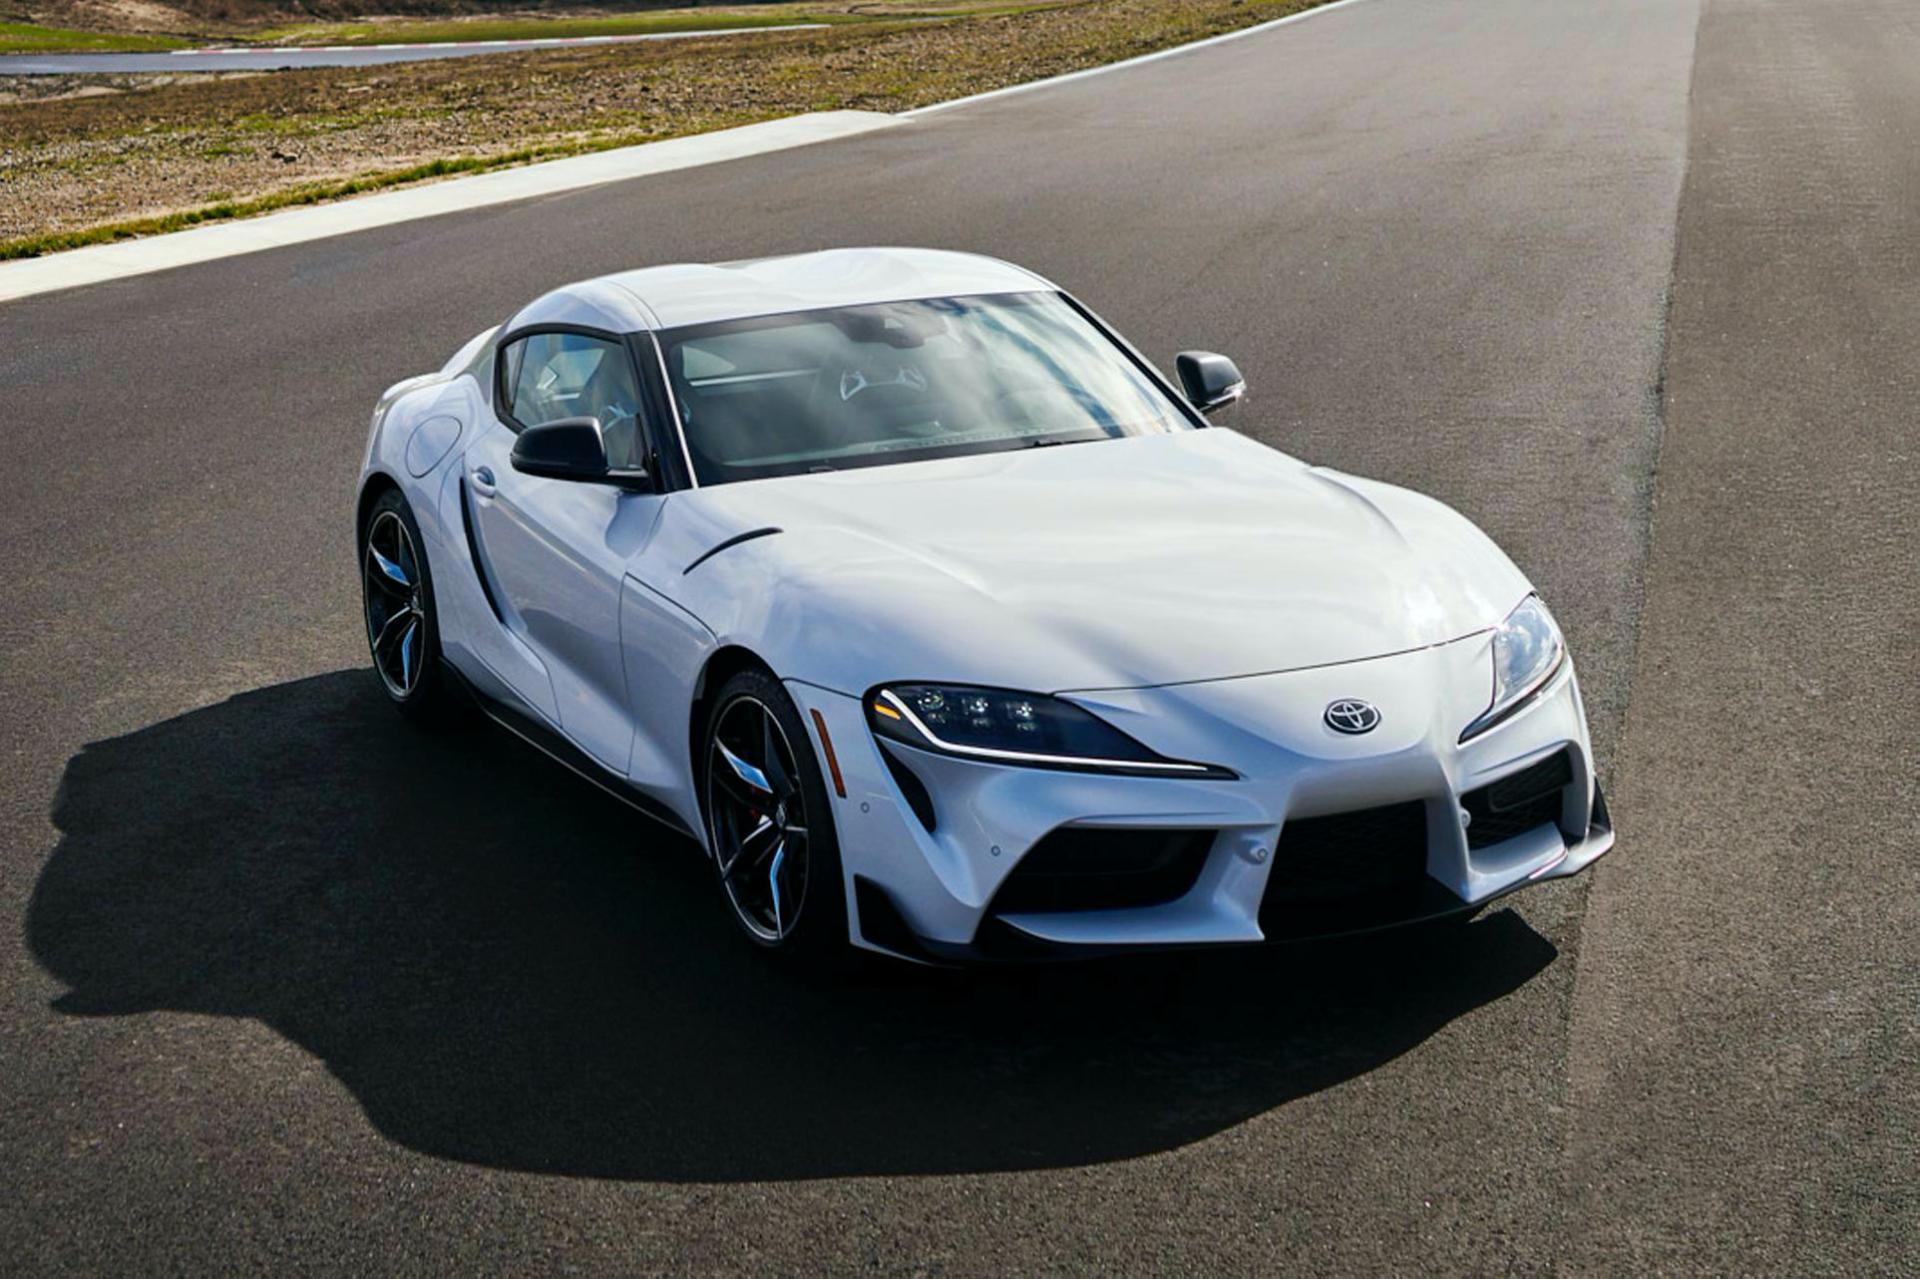 Toyota GR Supra in United States  - 47 hp more, 2.0L option